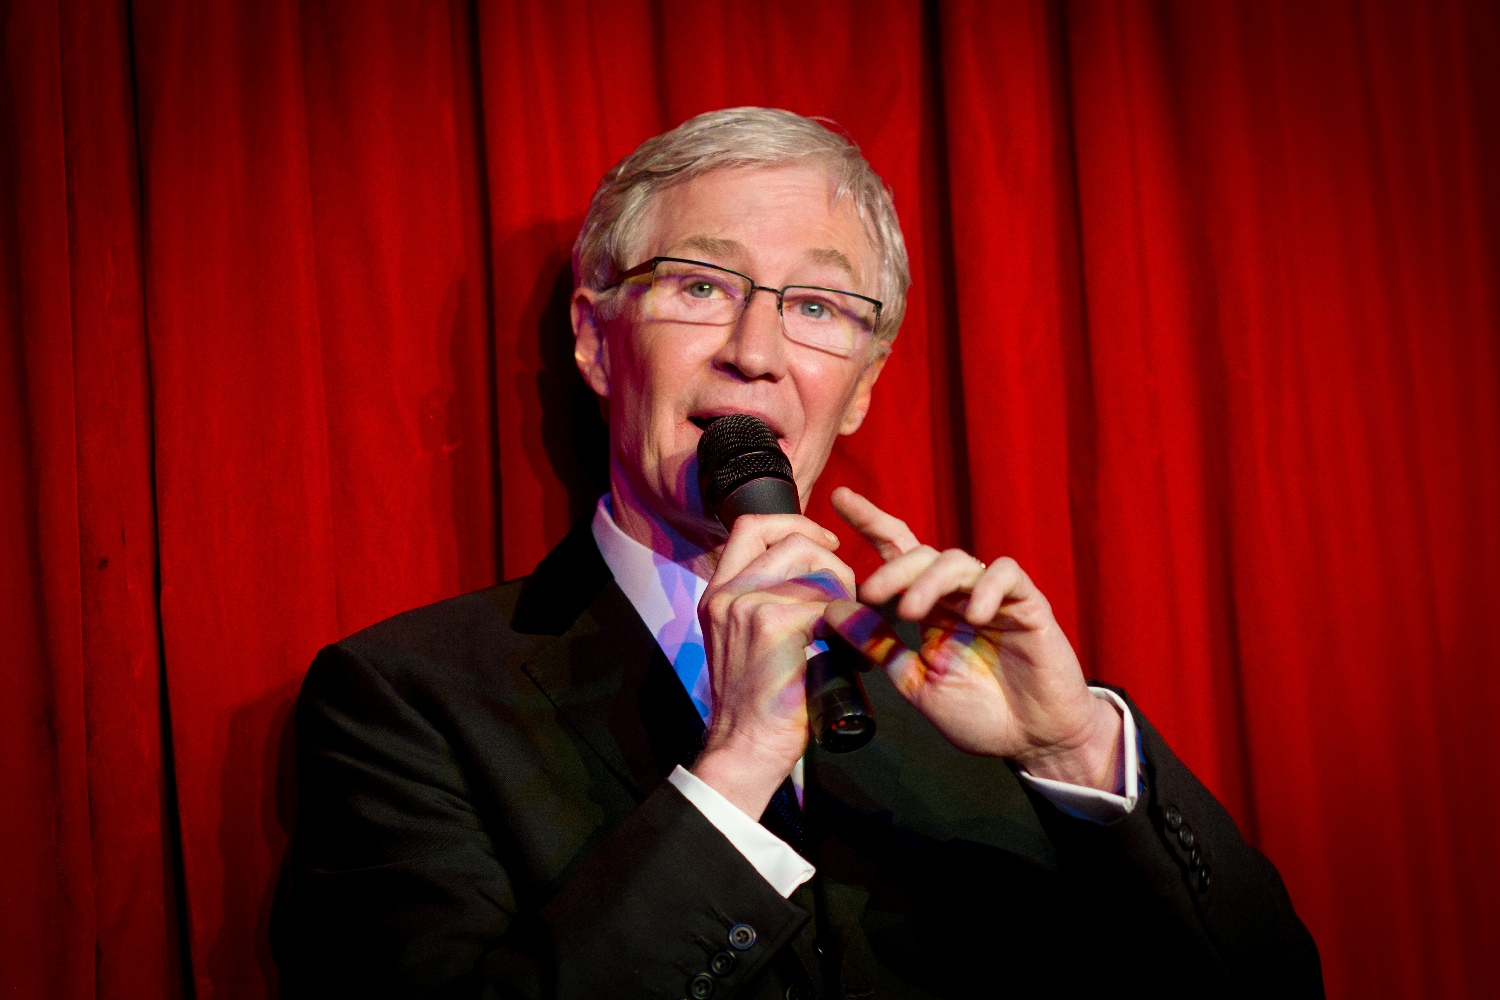 Mr Paul O'Grady at the RVT at the opening of the new entrance and re-naming ceremony on 16 February 2012